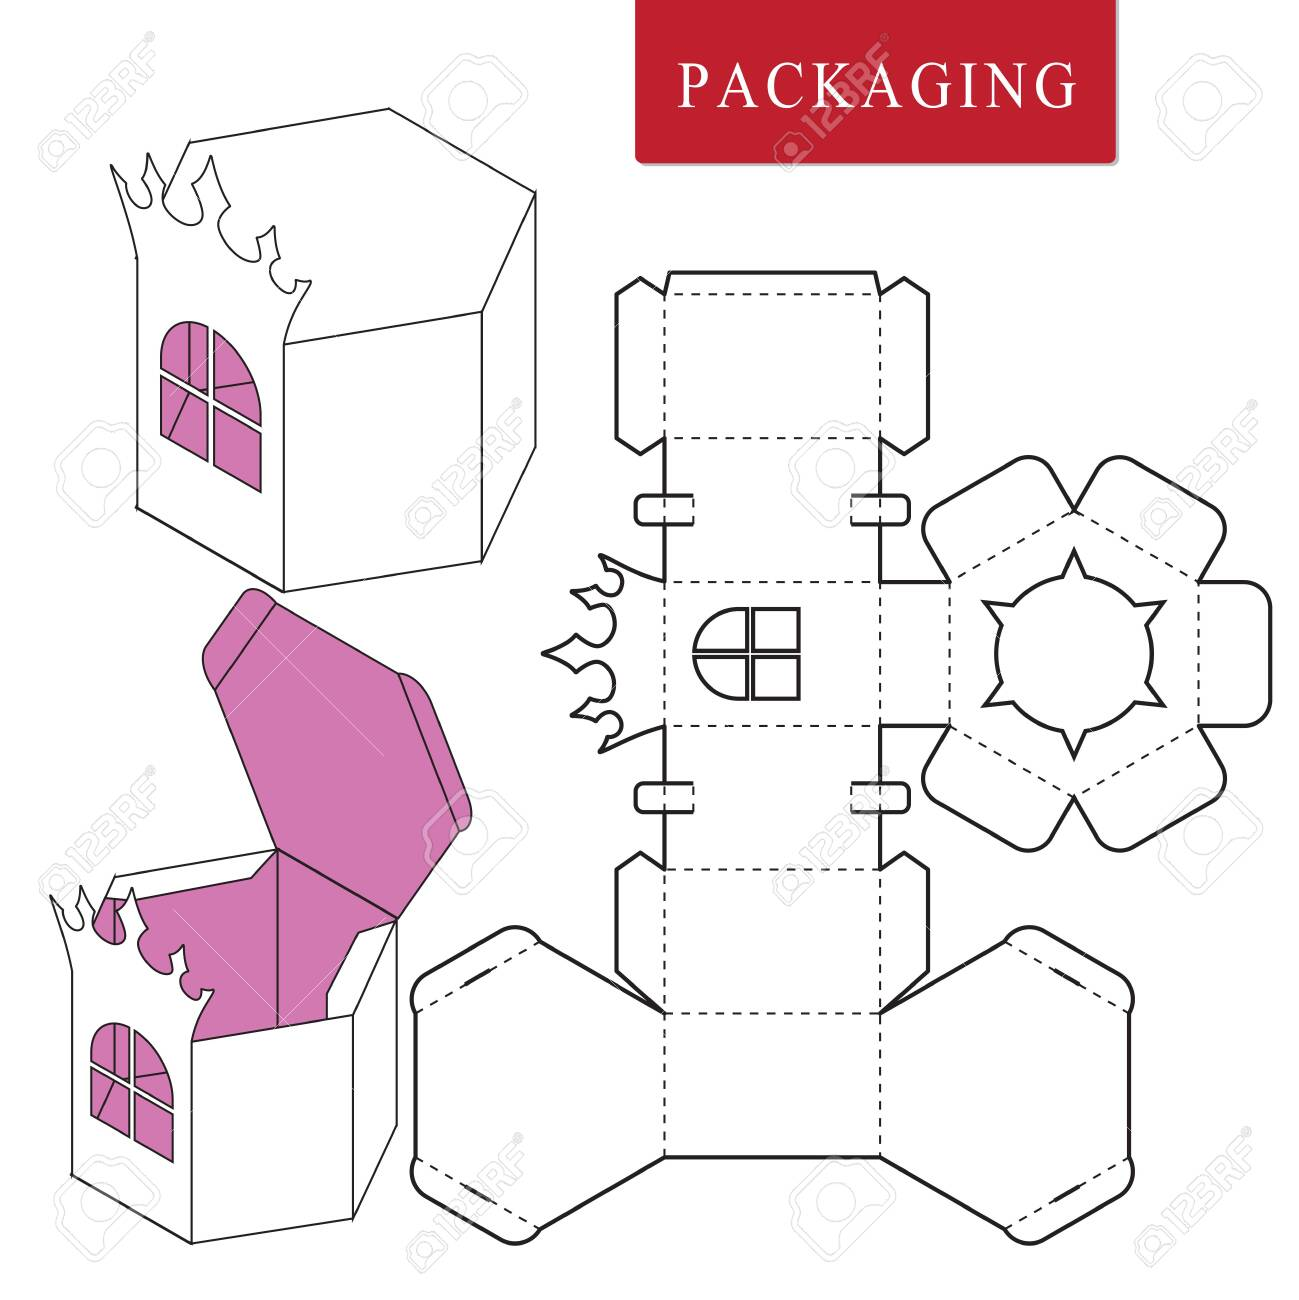 Package for object.Vector Illustration of Box. - 123945283